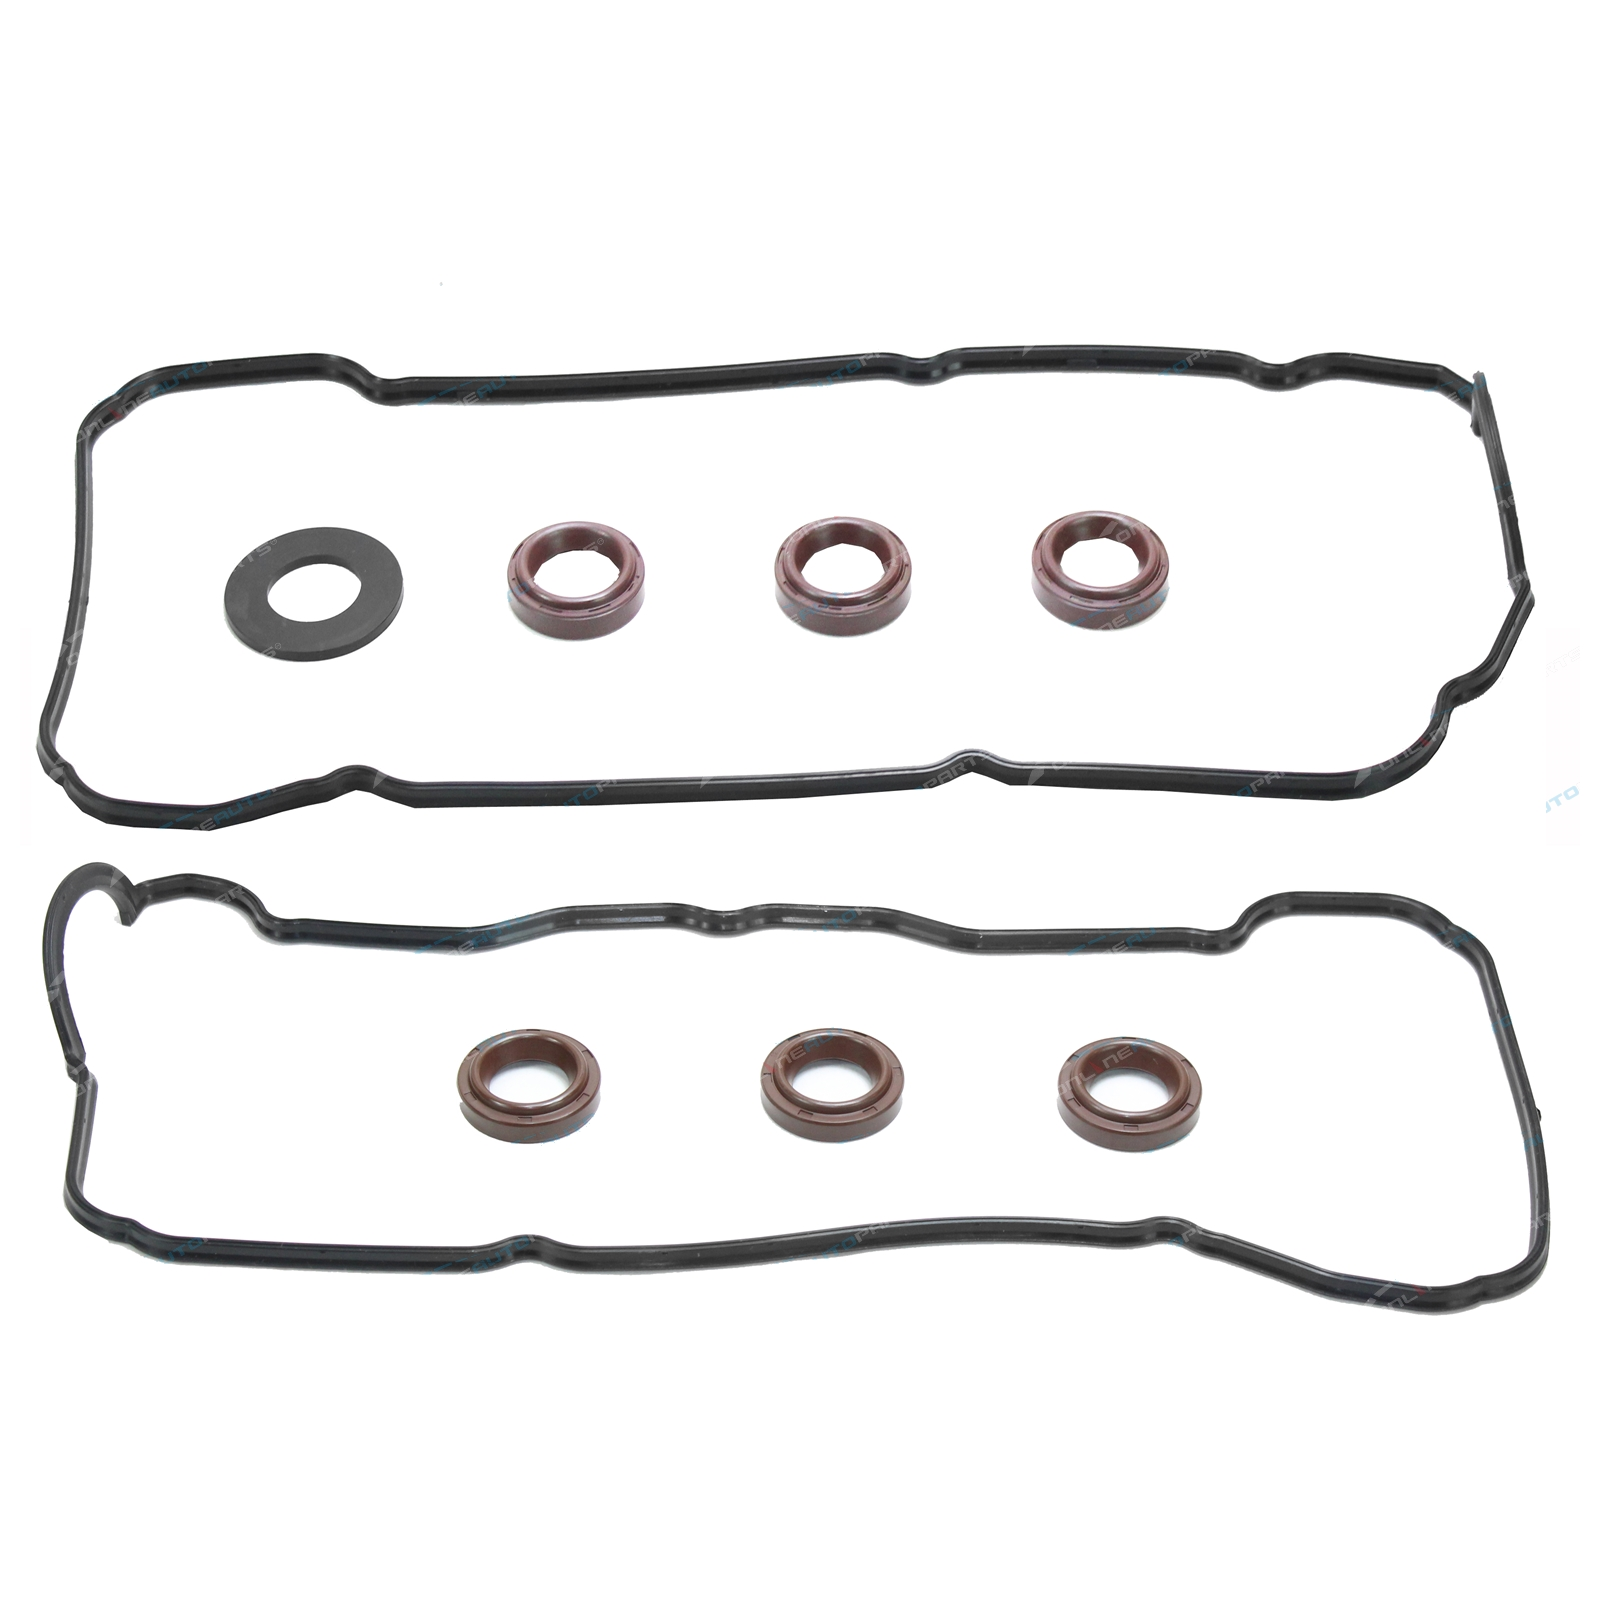 Rocker Cover Gasket Kit suits Toyota Camry MCV20 MCV36 V6